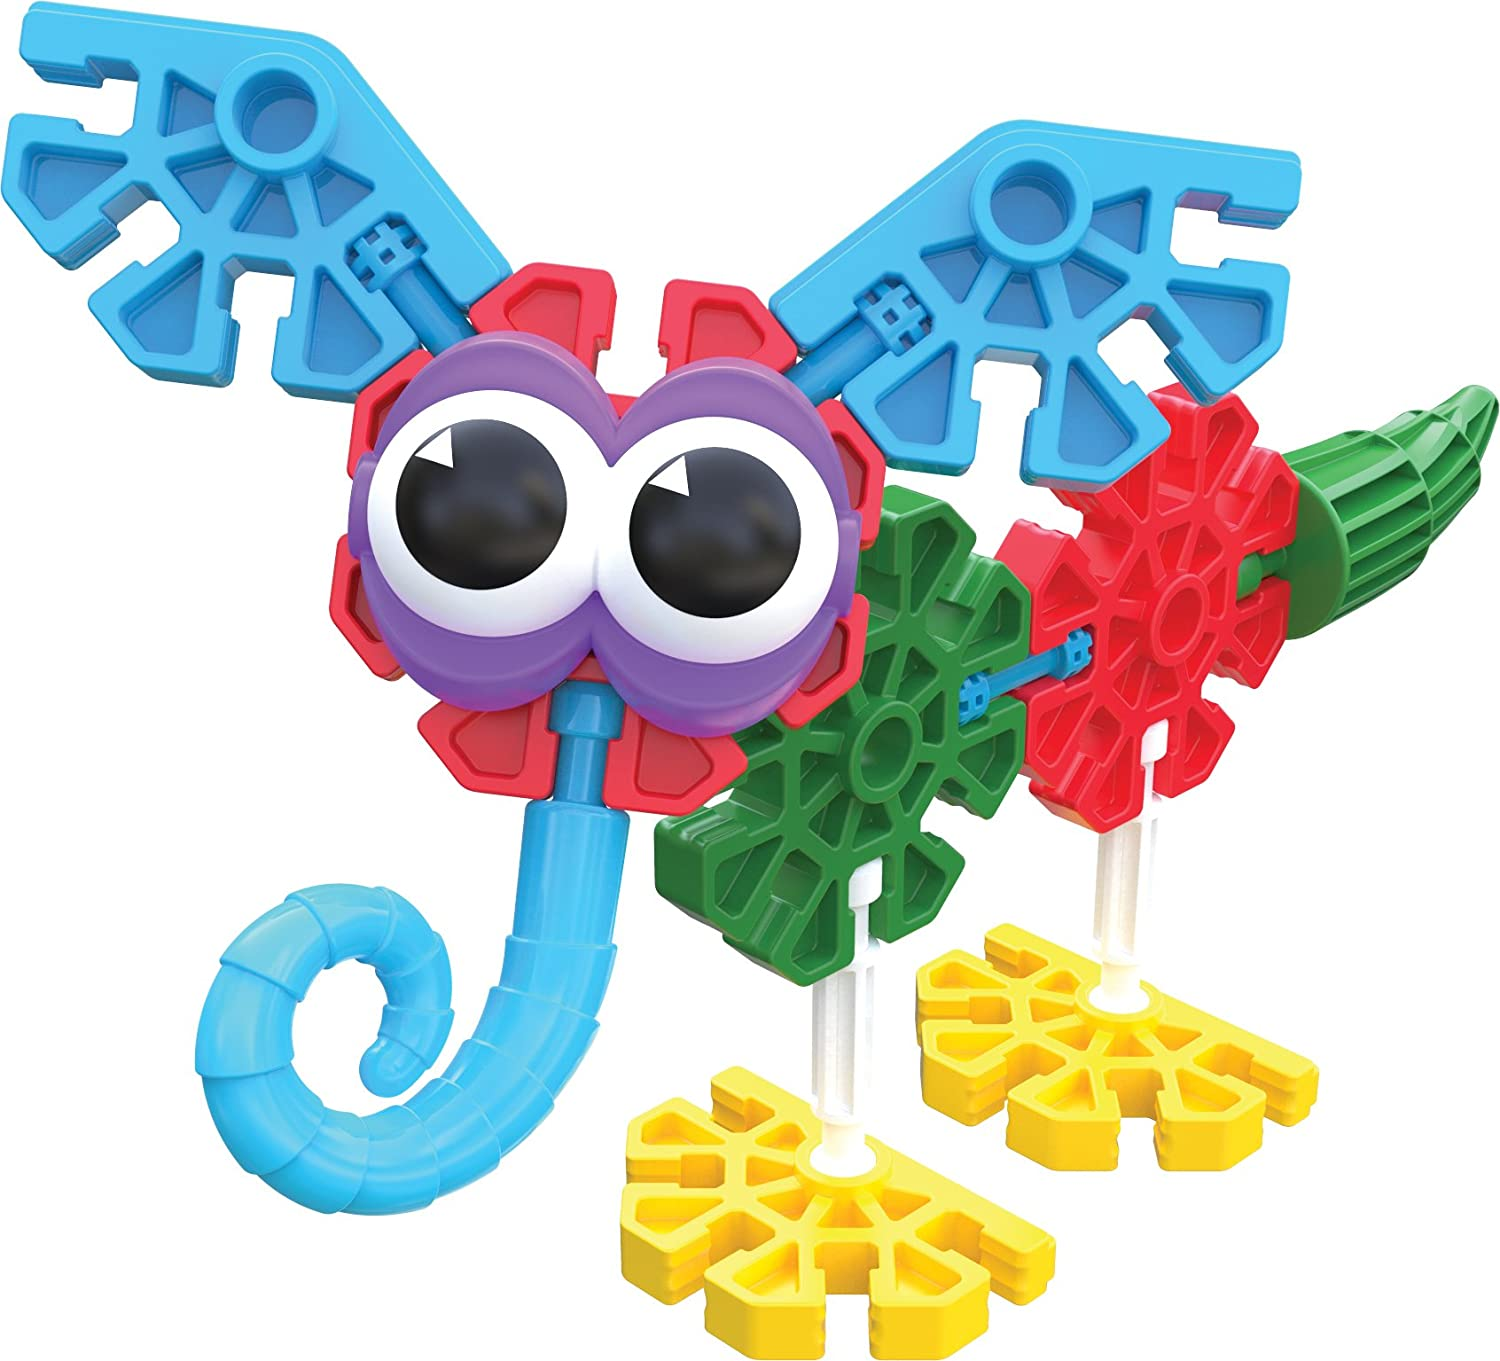 100 Pieces Preschool Educational Toy Kid K/'NEX Budding Builders Building Set Ages 3 and Up